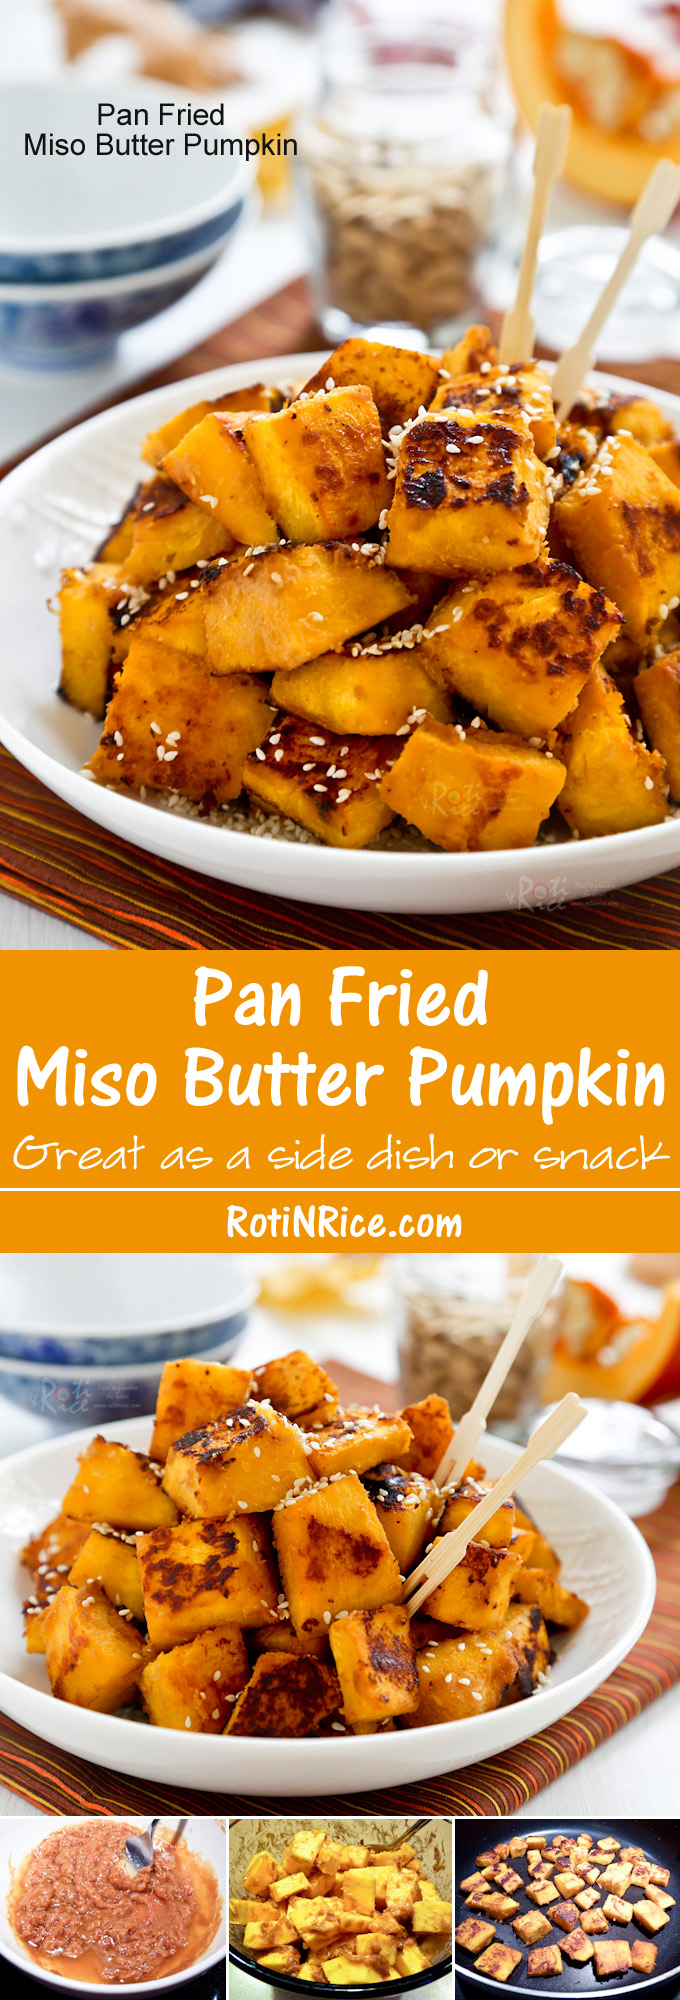 Fragrantly delicious and addicting Pan Fried Miso Butter Pumpkin sprinkled with toasted sesame seeds. Great as a snack or side dish. | RotiNRice.com